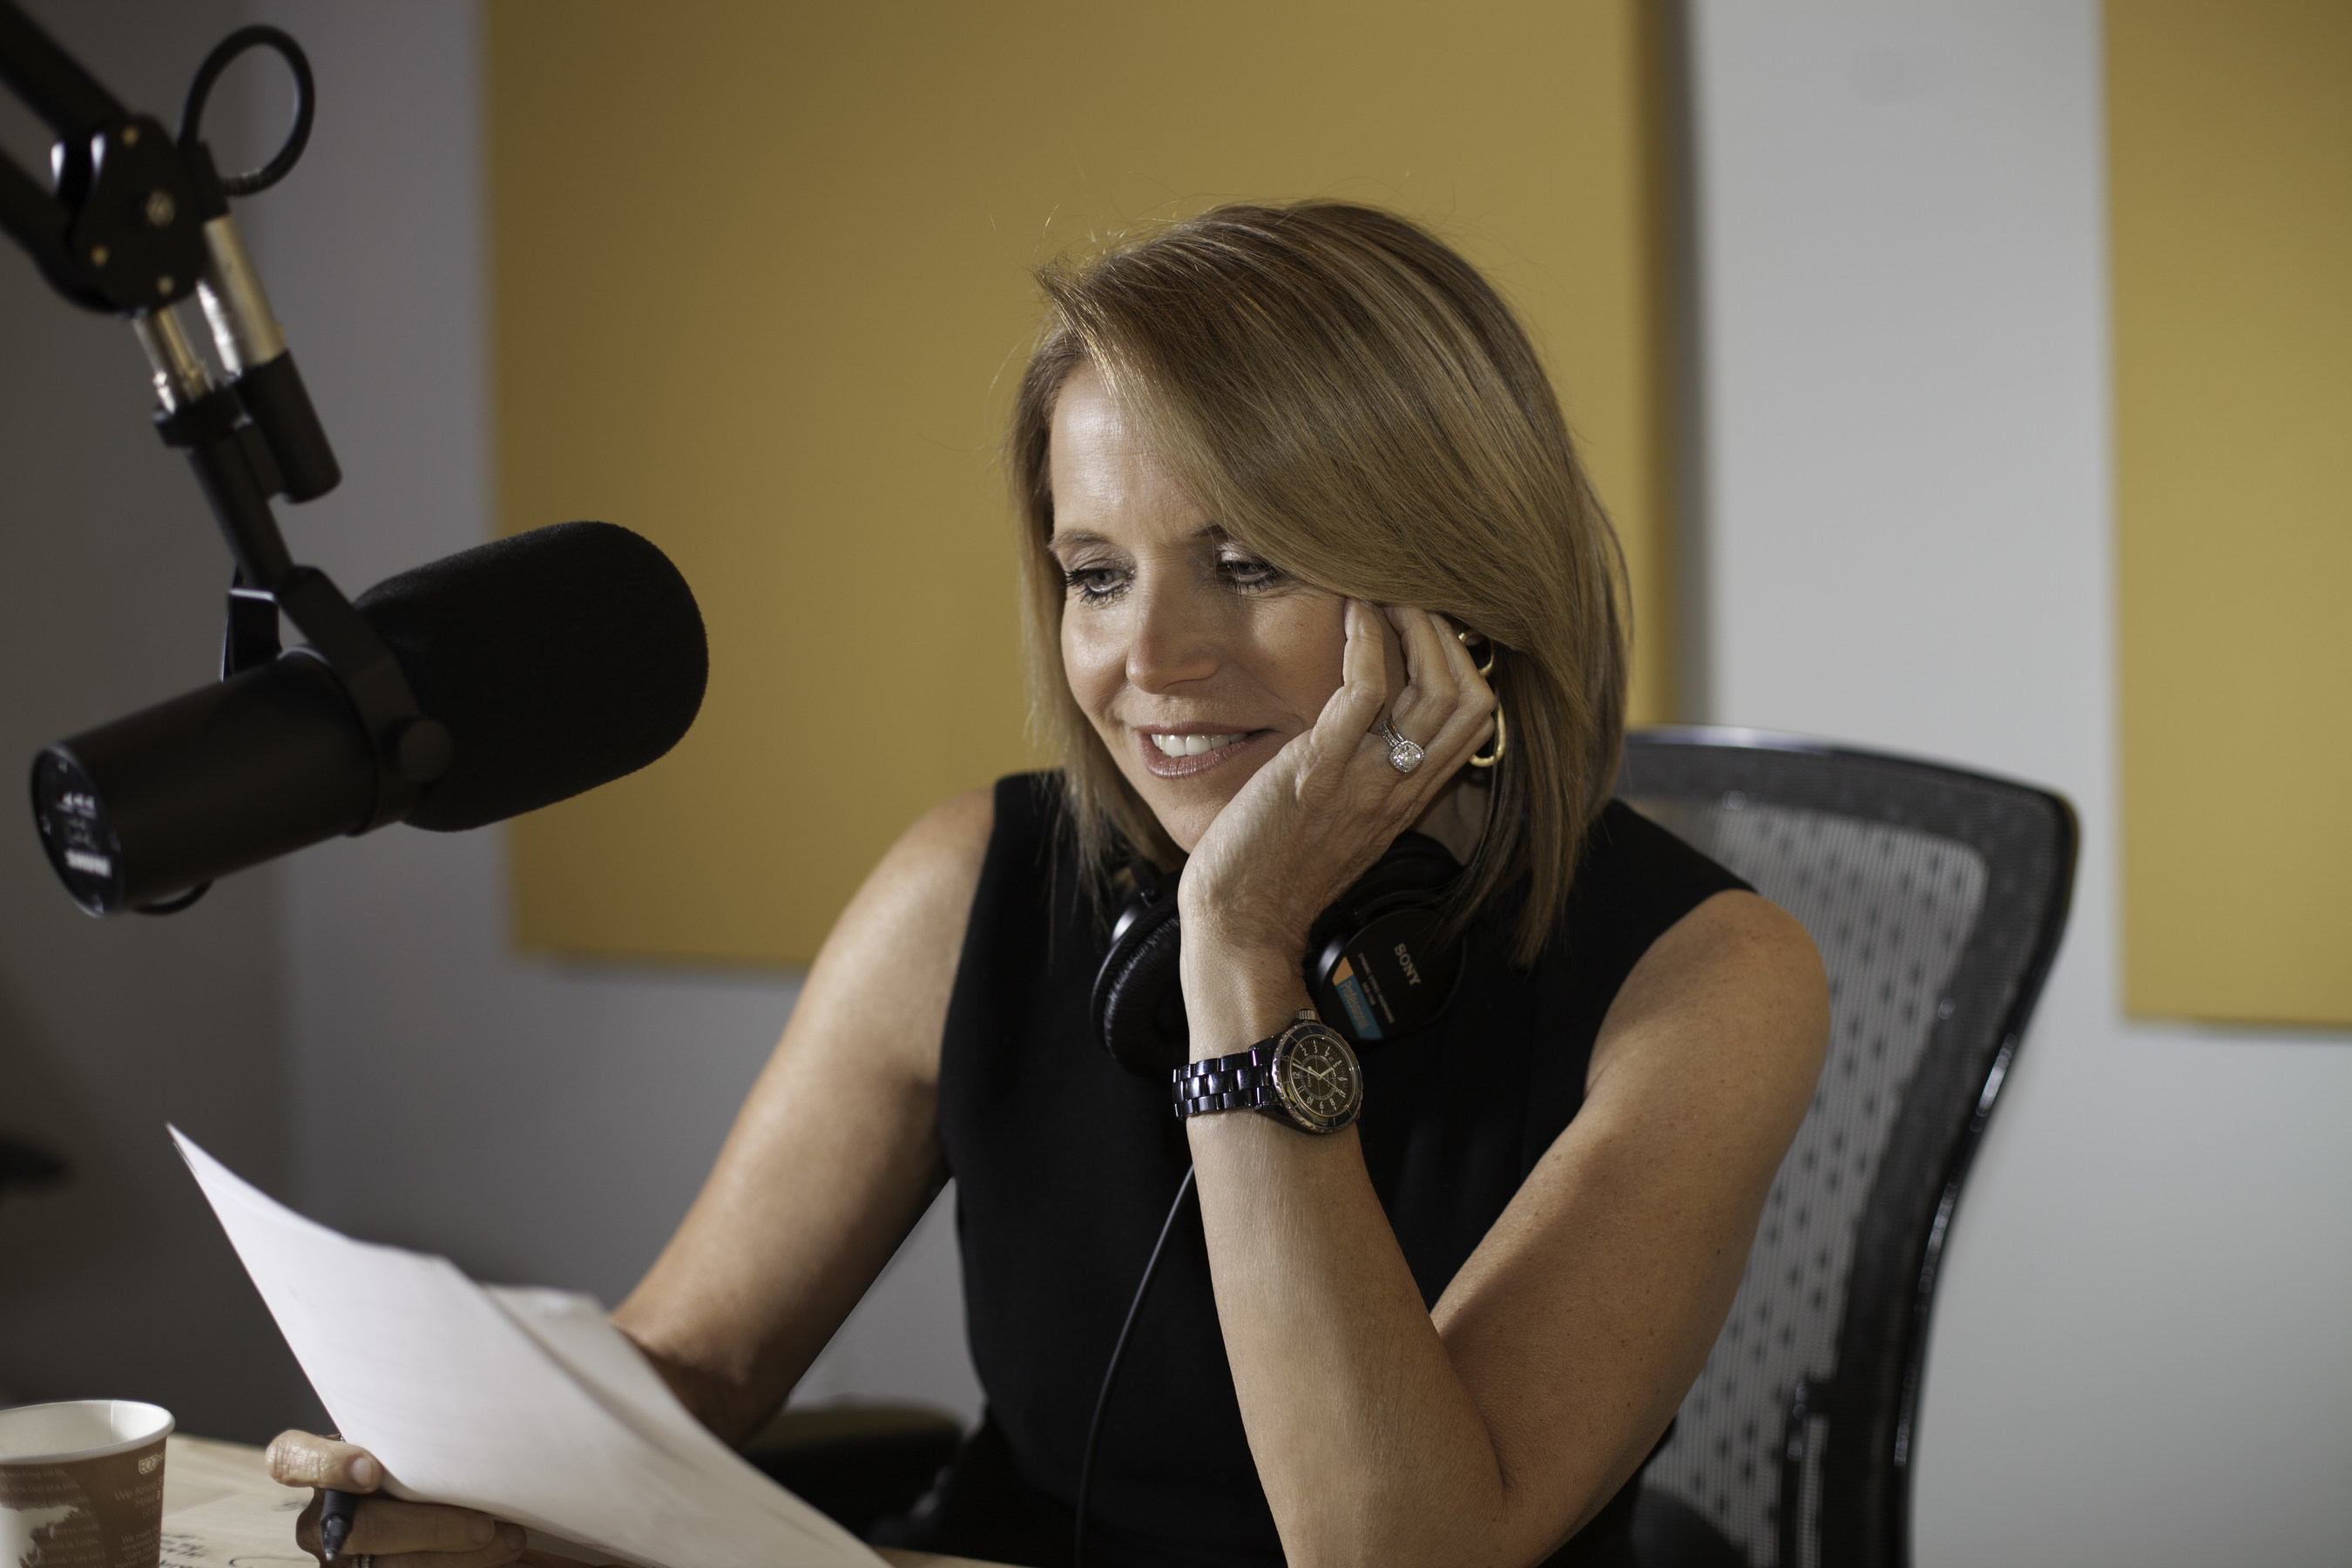 'Katie Couric' podcast to dive into smart, unscripted conversations on news, politics and culture